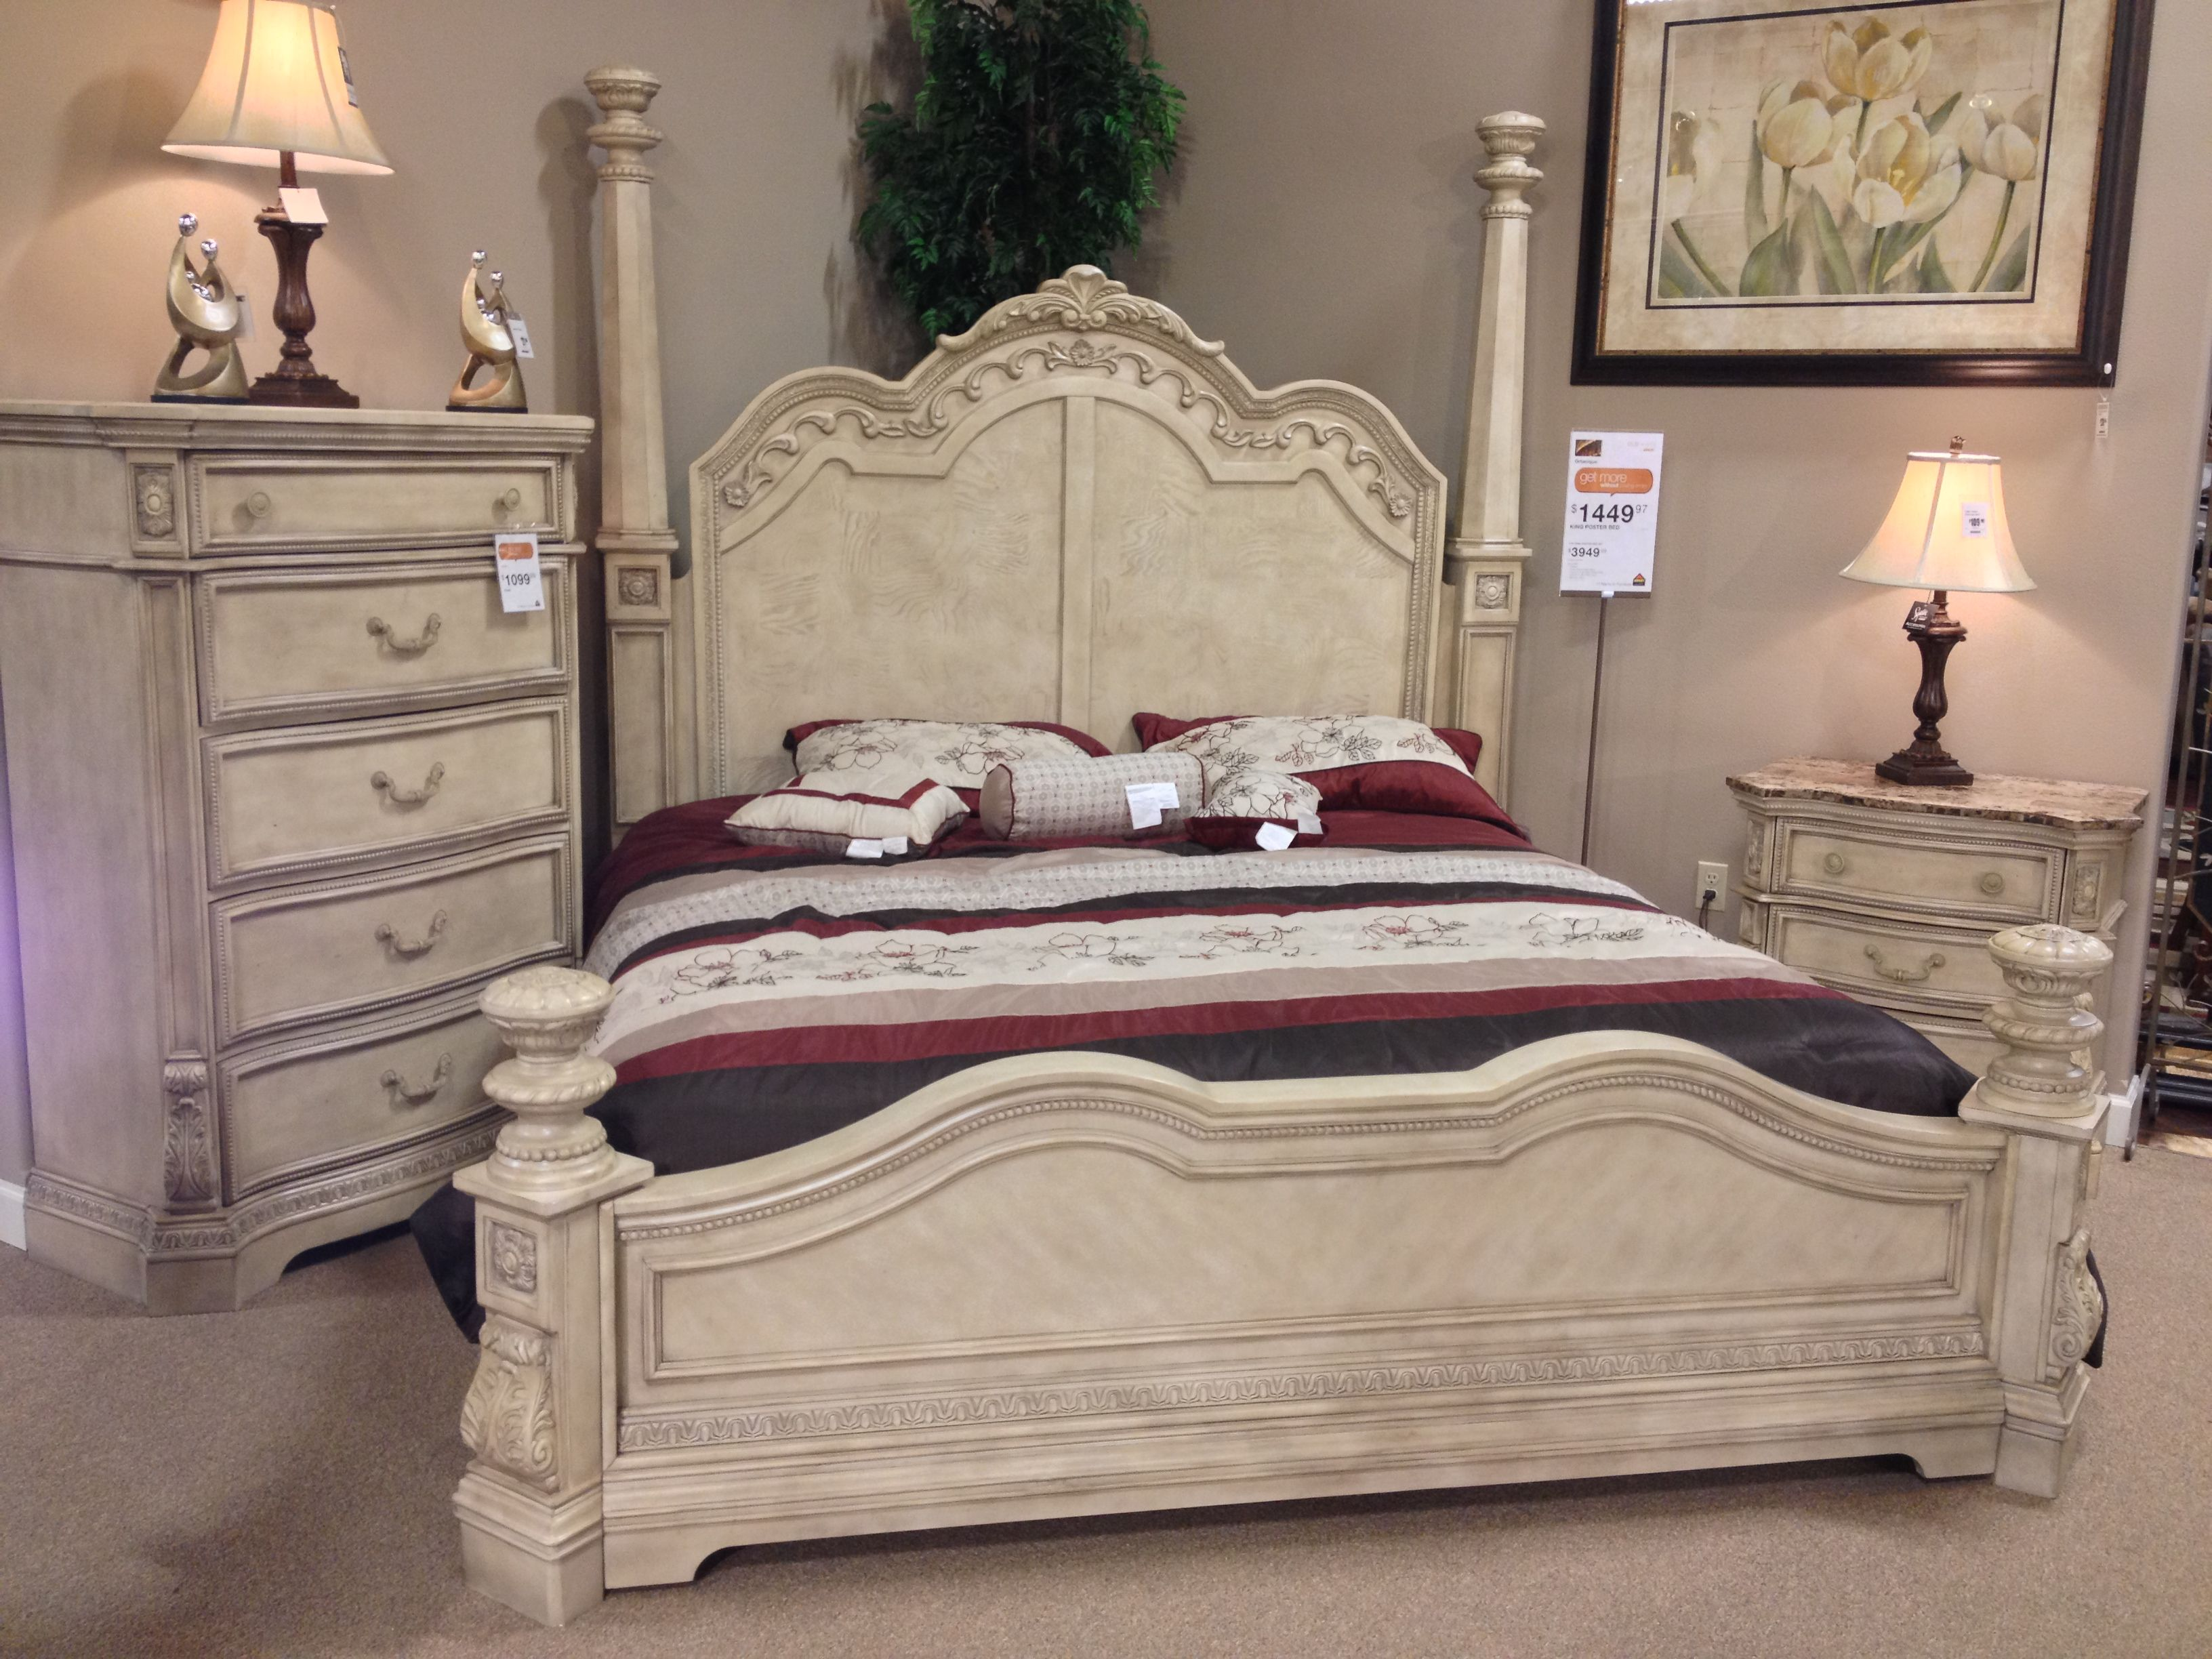 Ortanique king poster bed three drawer nightstand 5 for Ortanique furniture